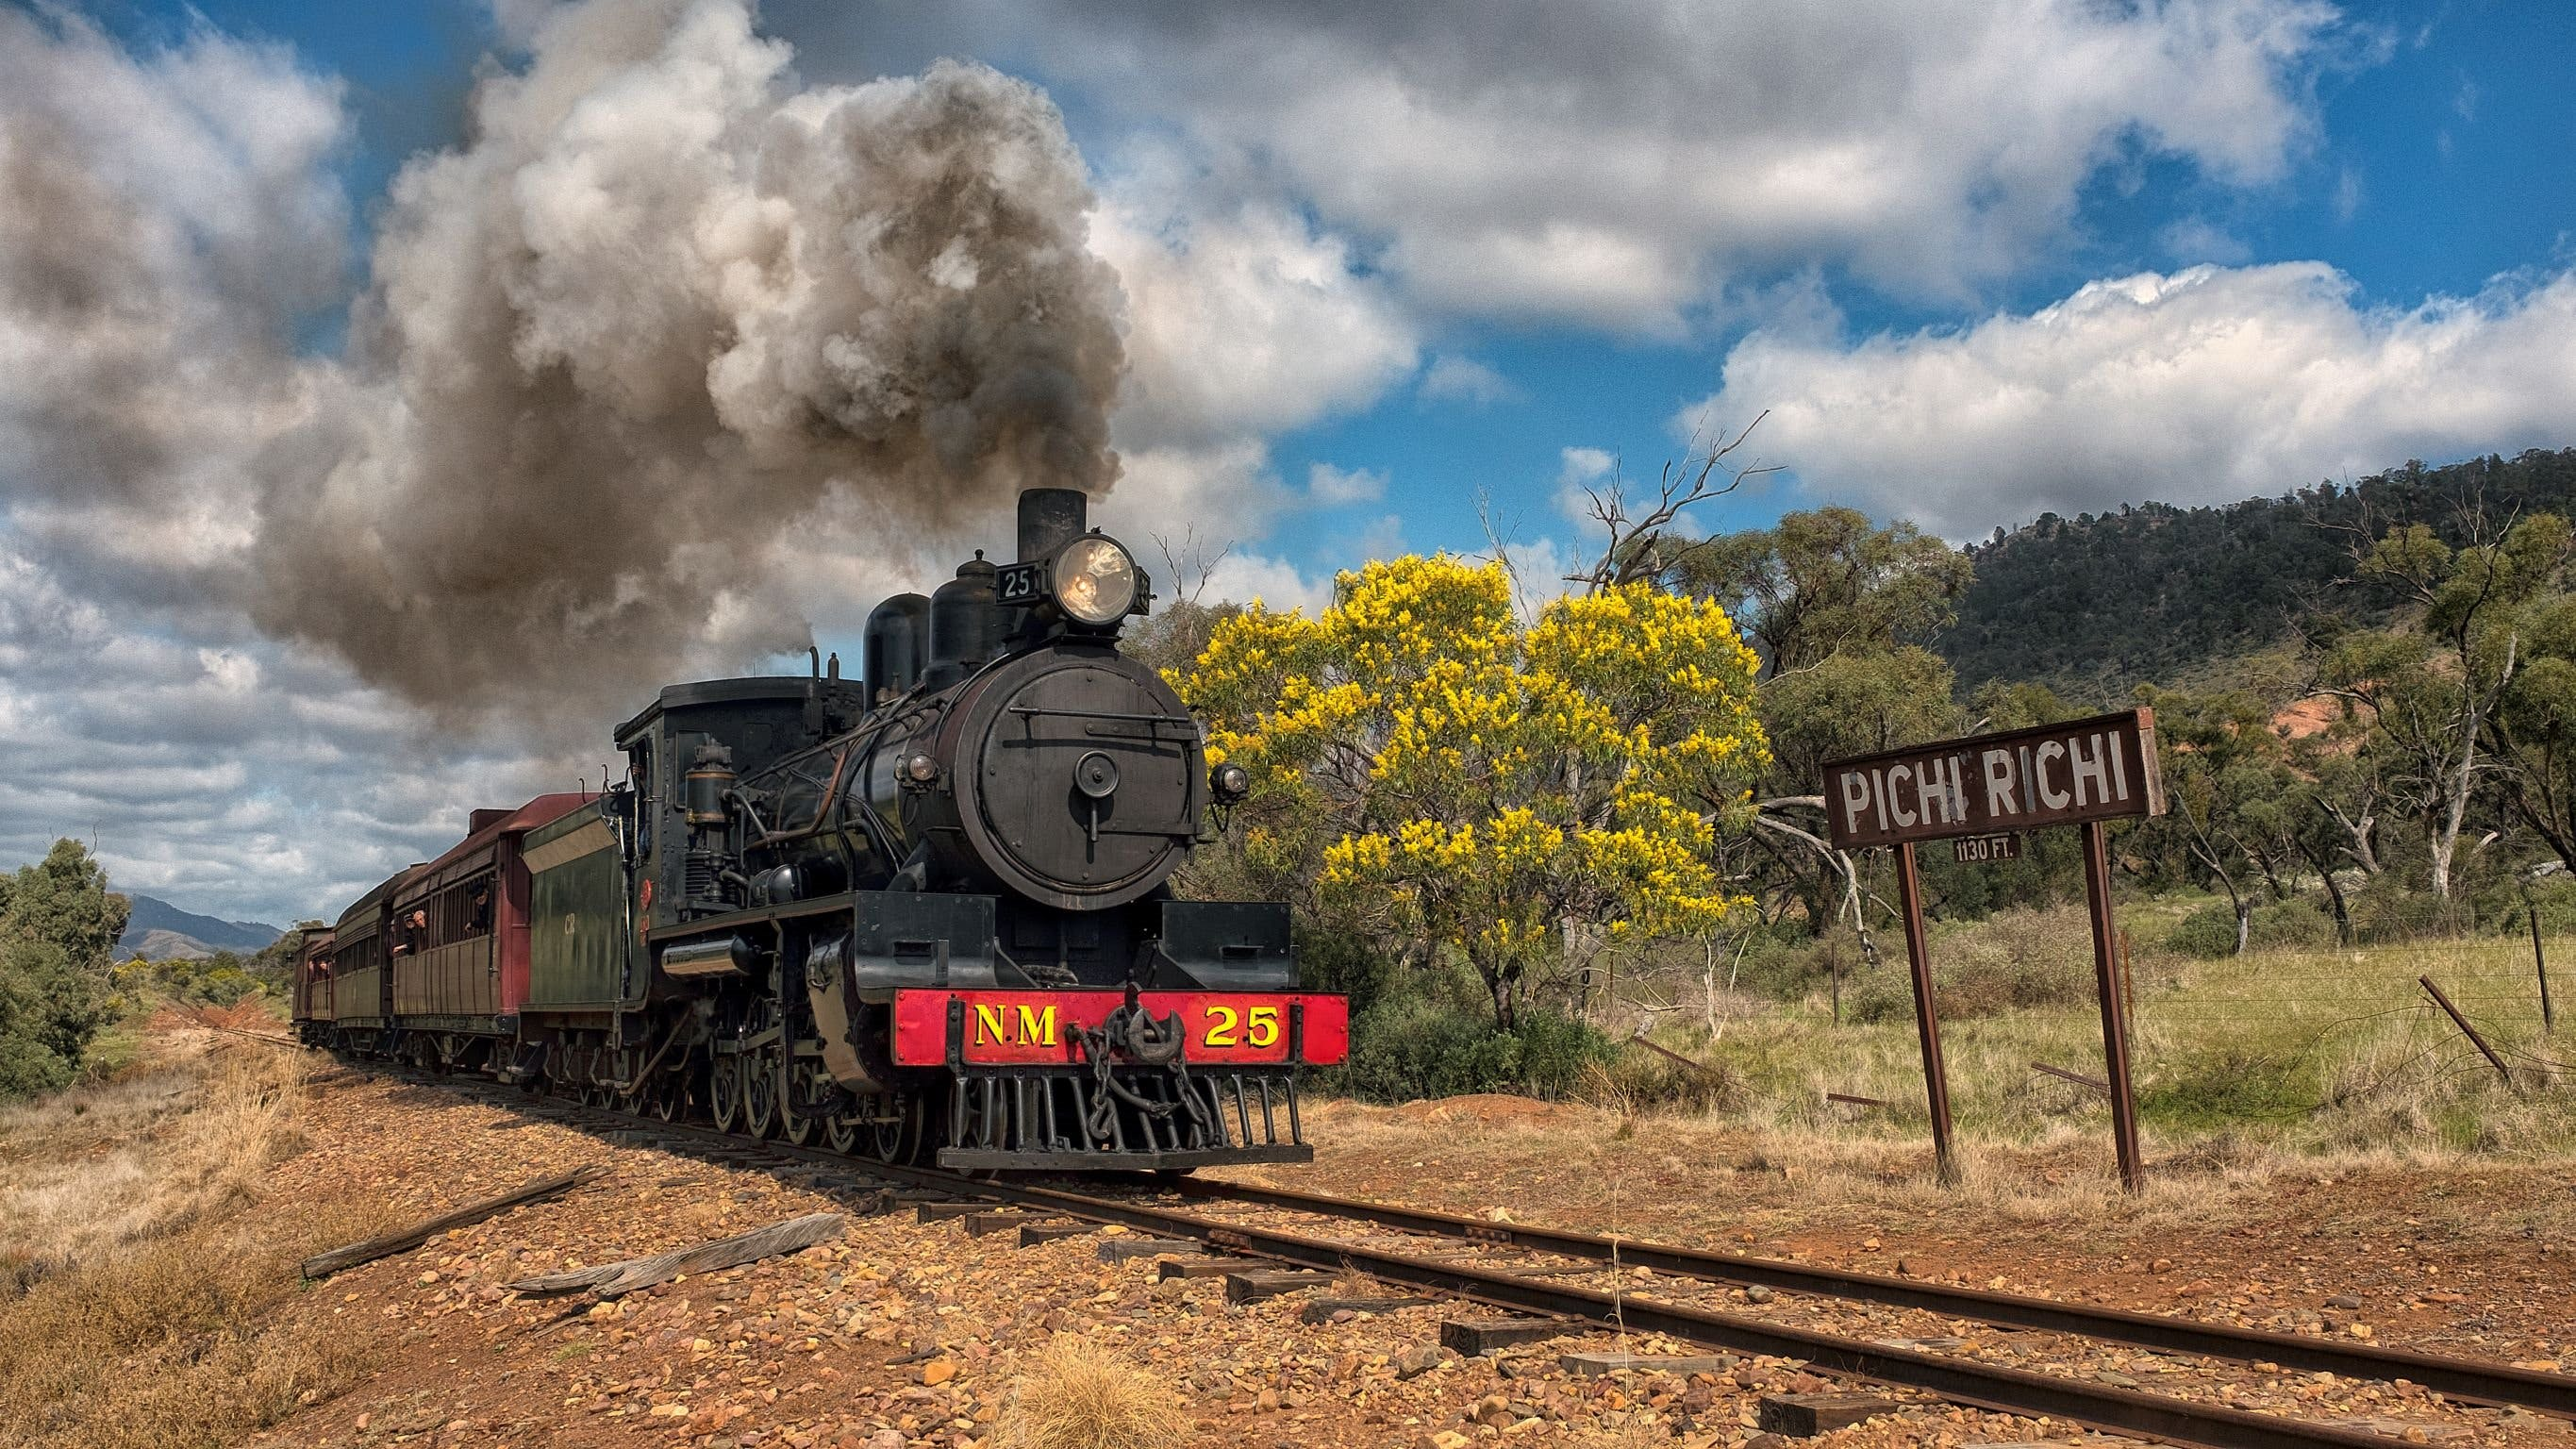 Pichi Richi Railway - Redcliffe Tourism